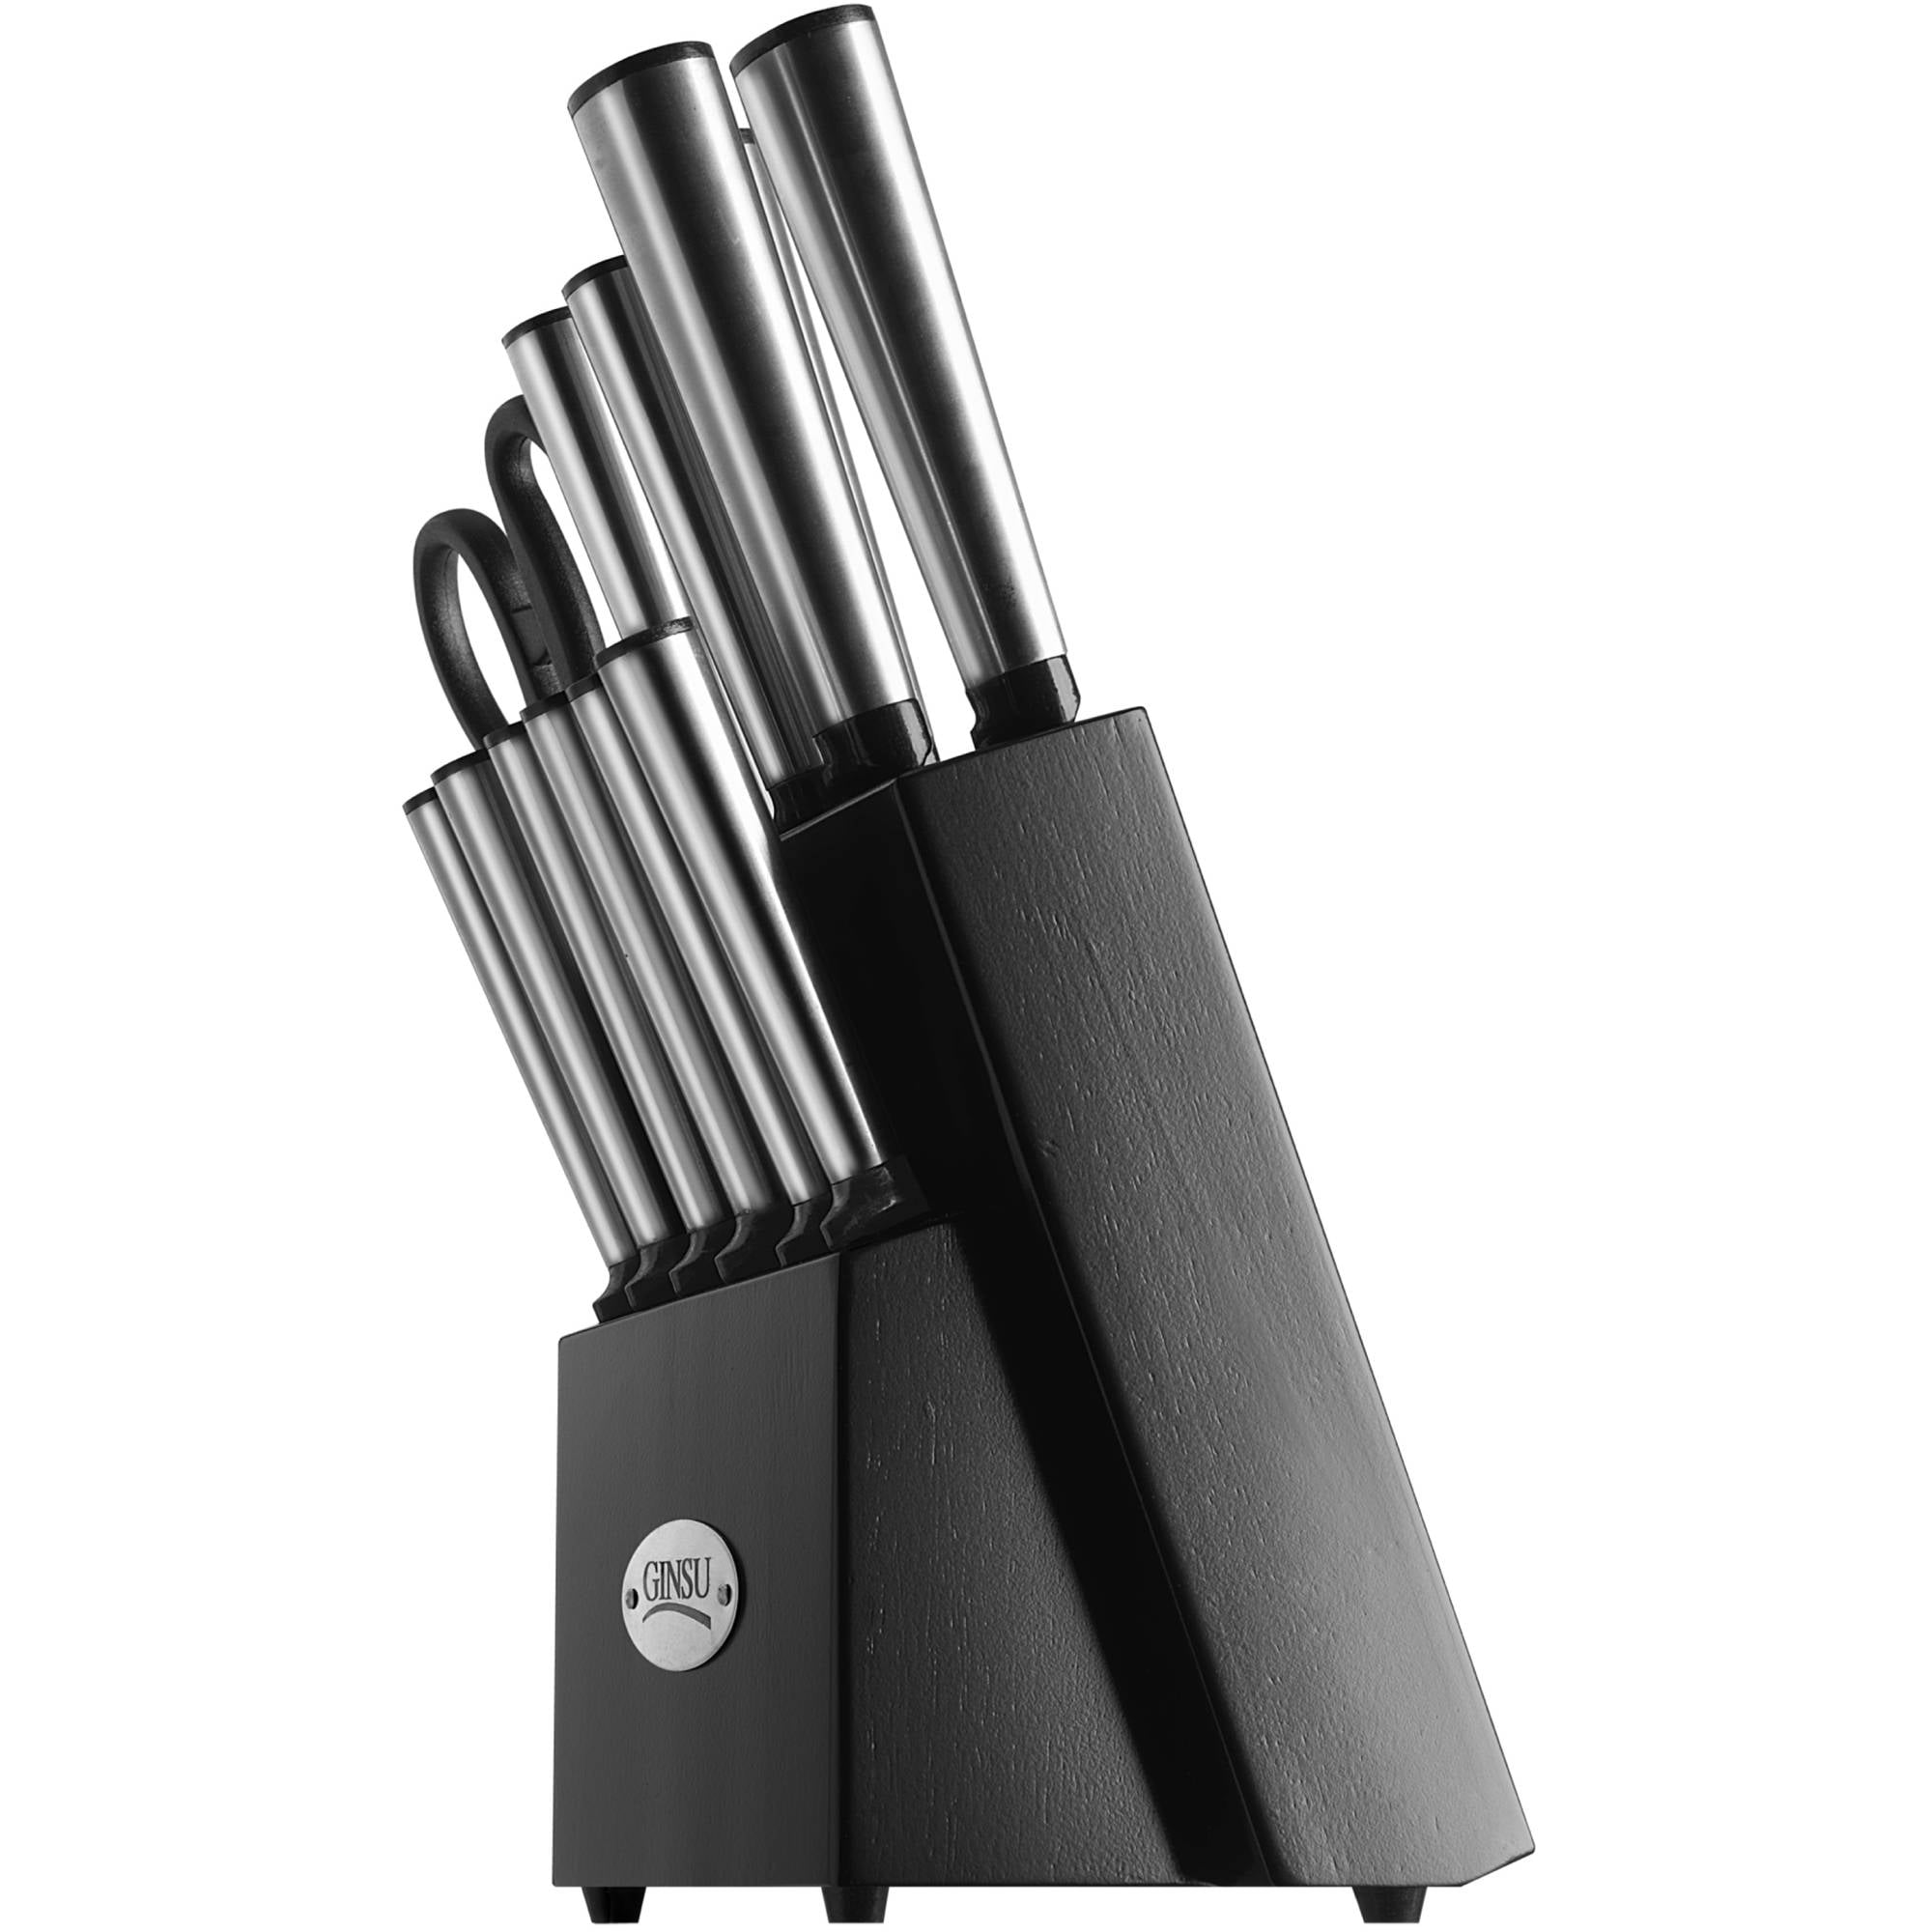 Click here to buy Ginsu Koden Series 14-Piece Stainless Steel Serrated Knife Set � Cutlery Set with Stainless Steel Kitchen Knives in a Black Block,... by Ginsu Brands a Scott Fetzer company.